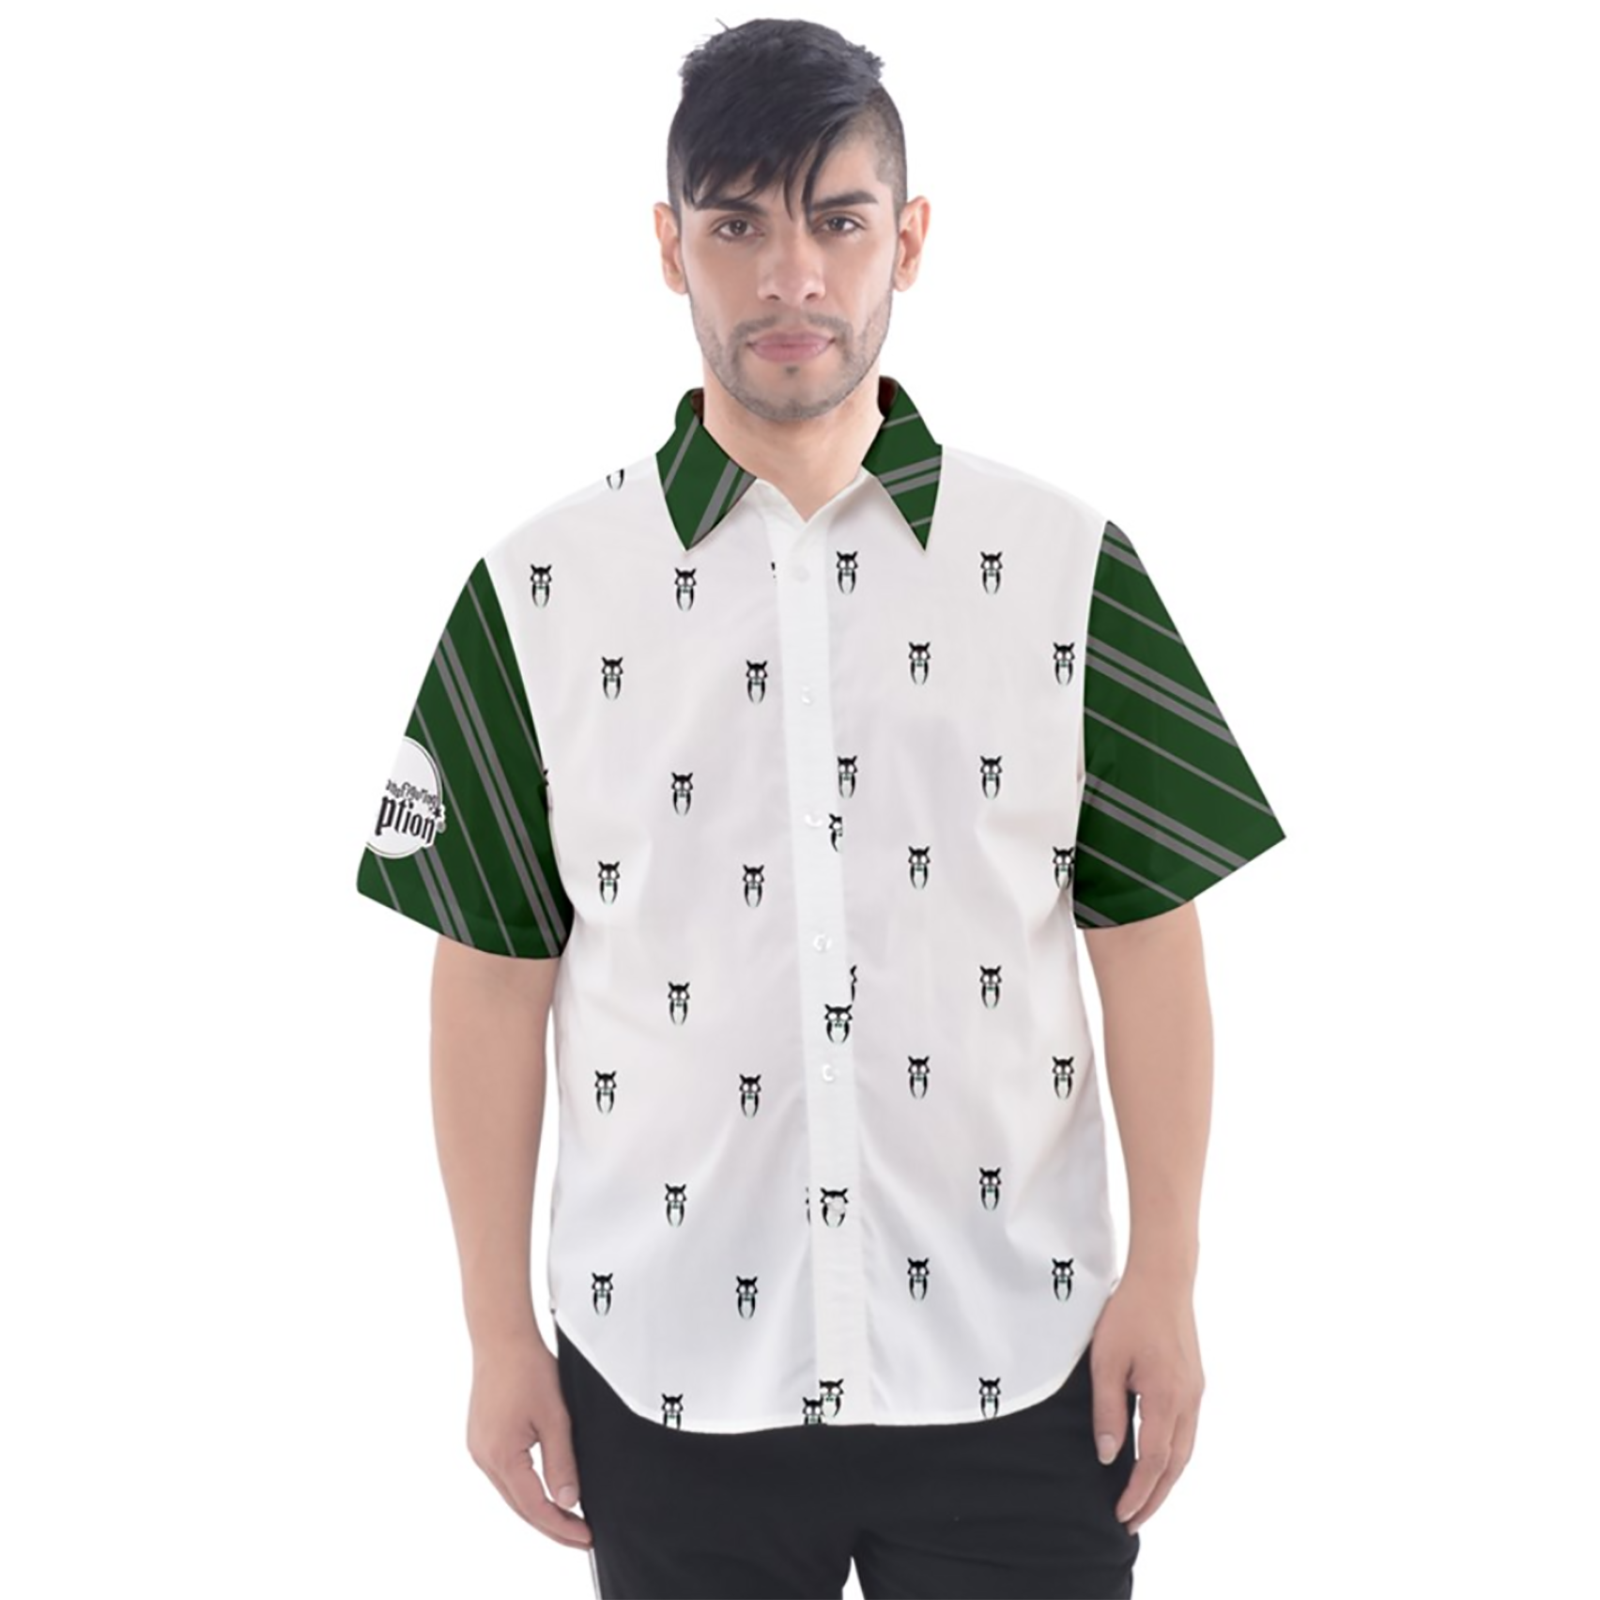 Green & Gray Owl Patterned Button Up Short Sleeve Shirt - Inspired by Slytherin House